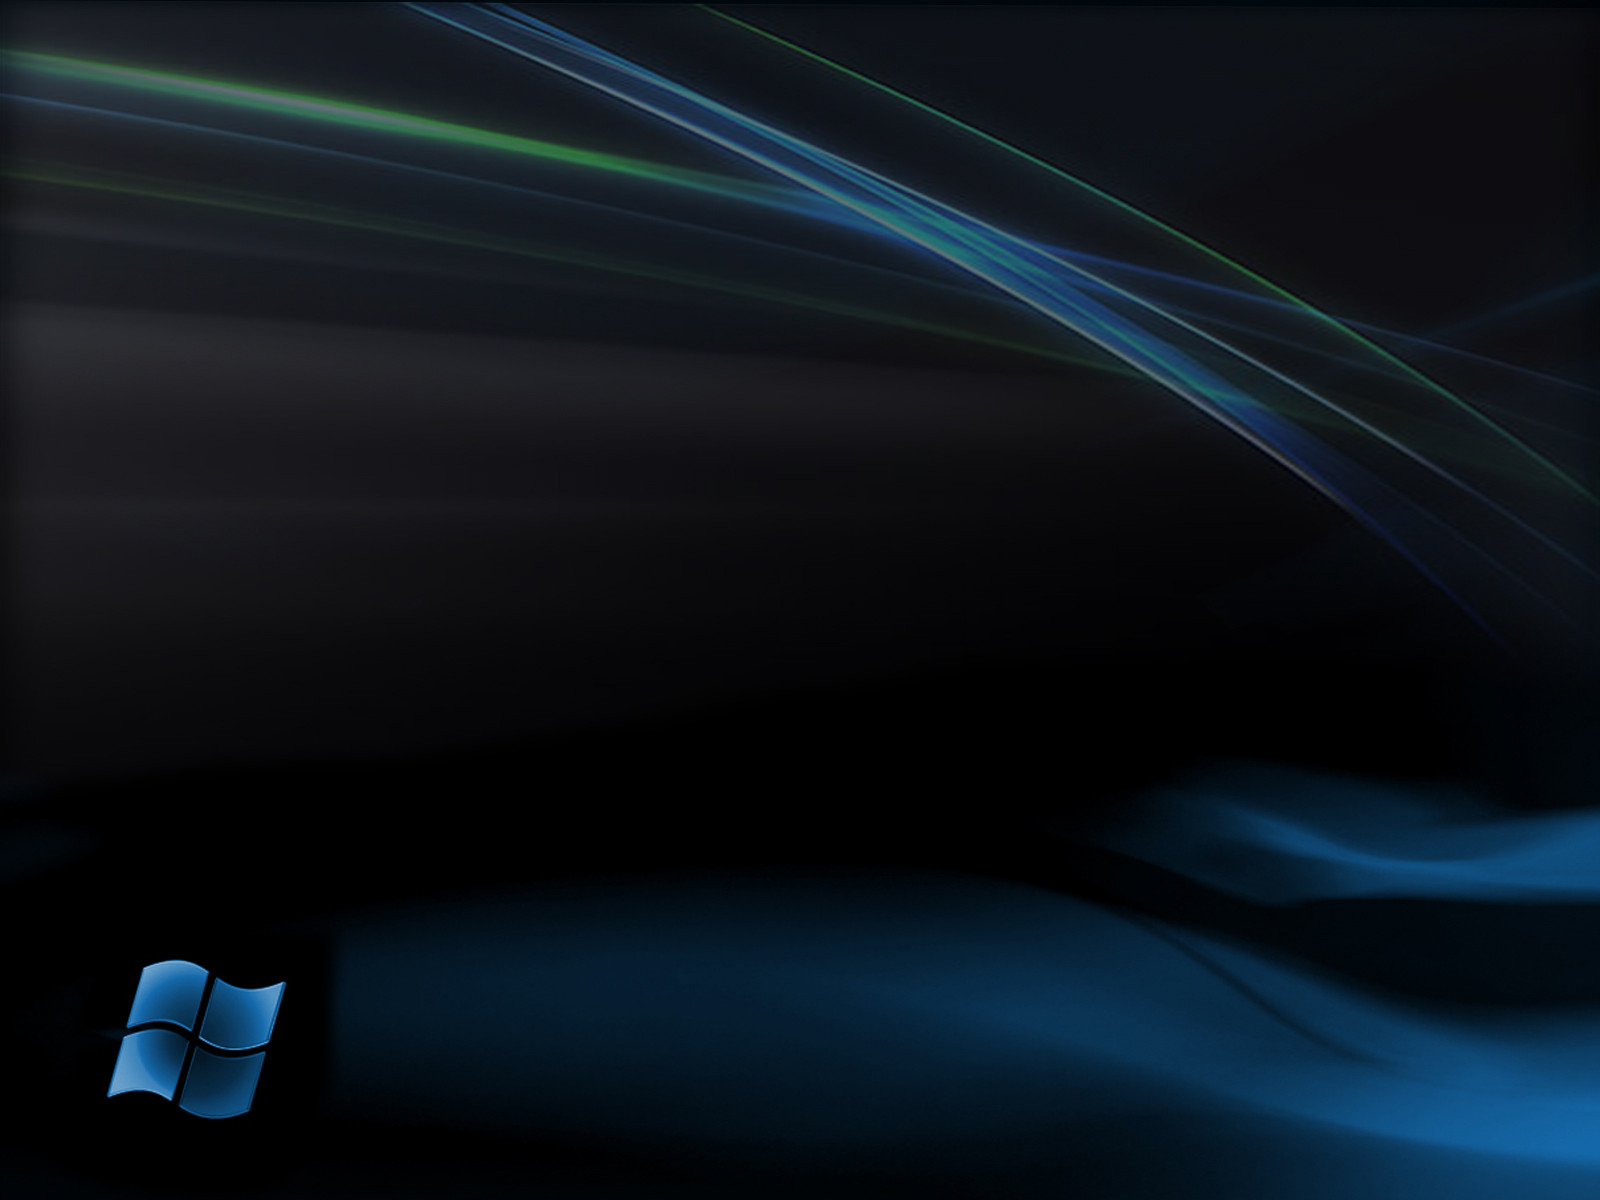 Windows 7 Wallpapers & Themes: Abstract Windows 7 Wallpaper